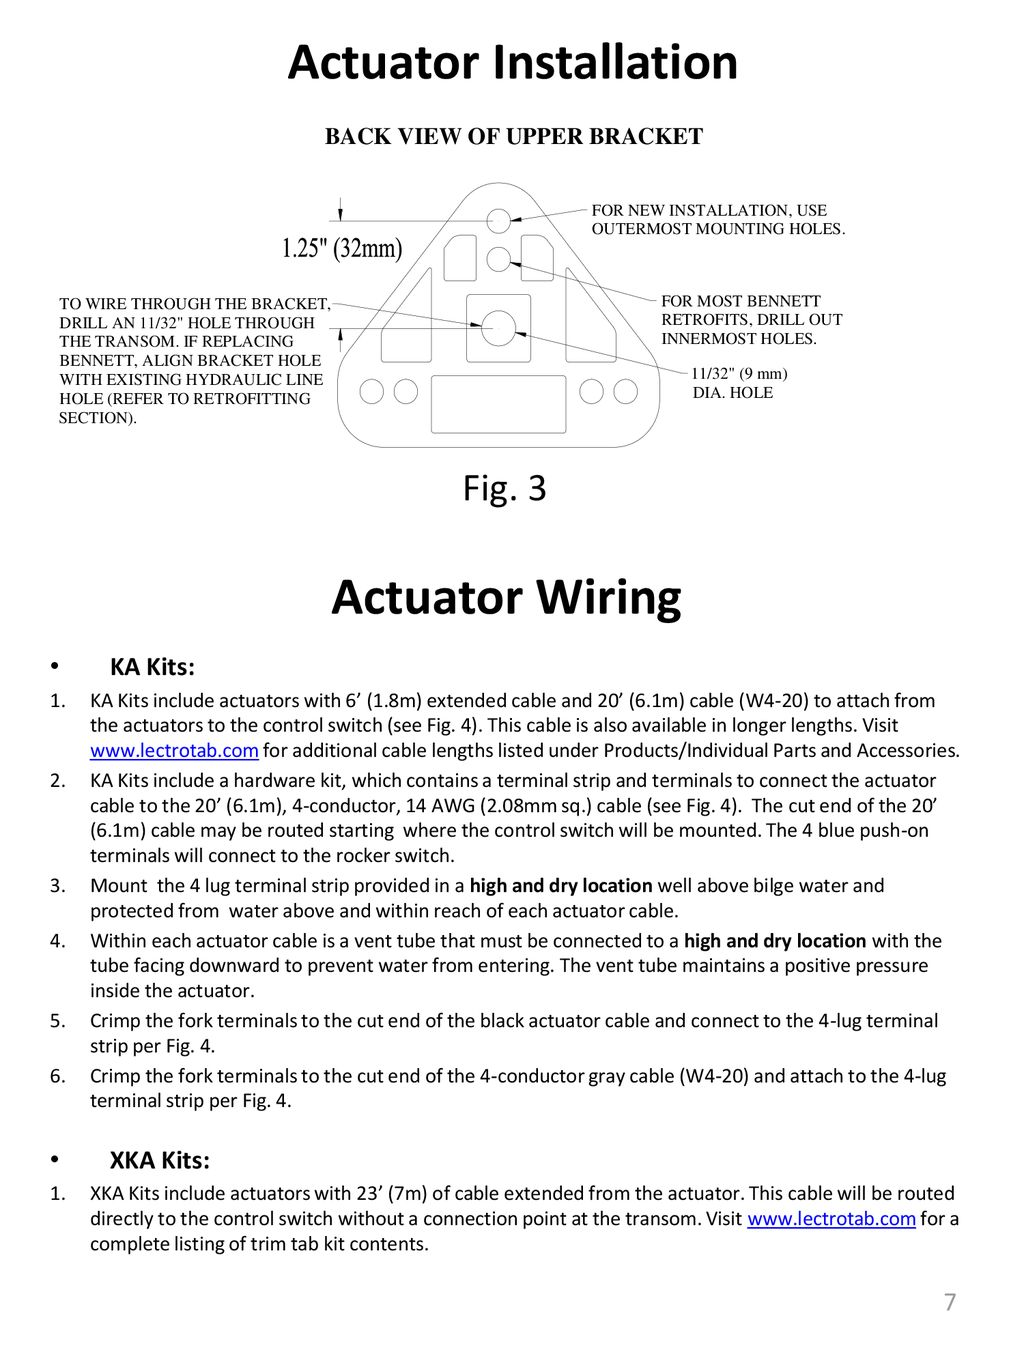 Operation And Installation Manual Ppt Download Bennett Rocker Switch Wiring Diagram 7 Actuator